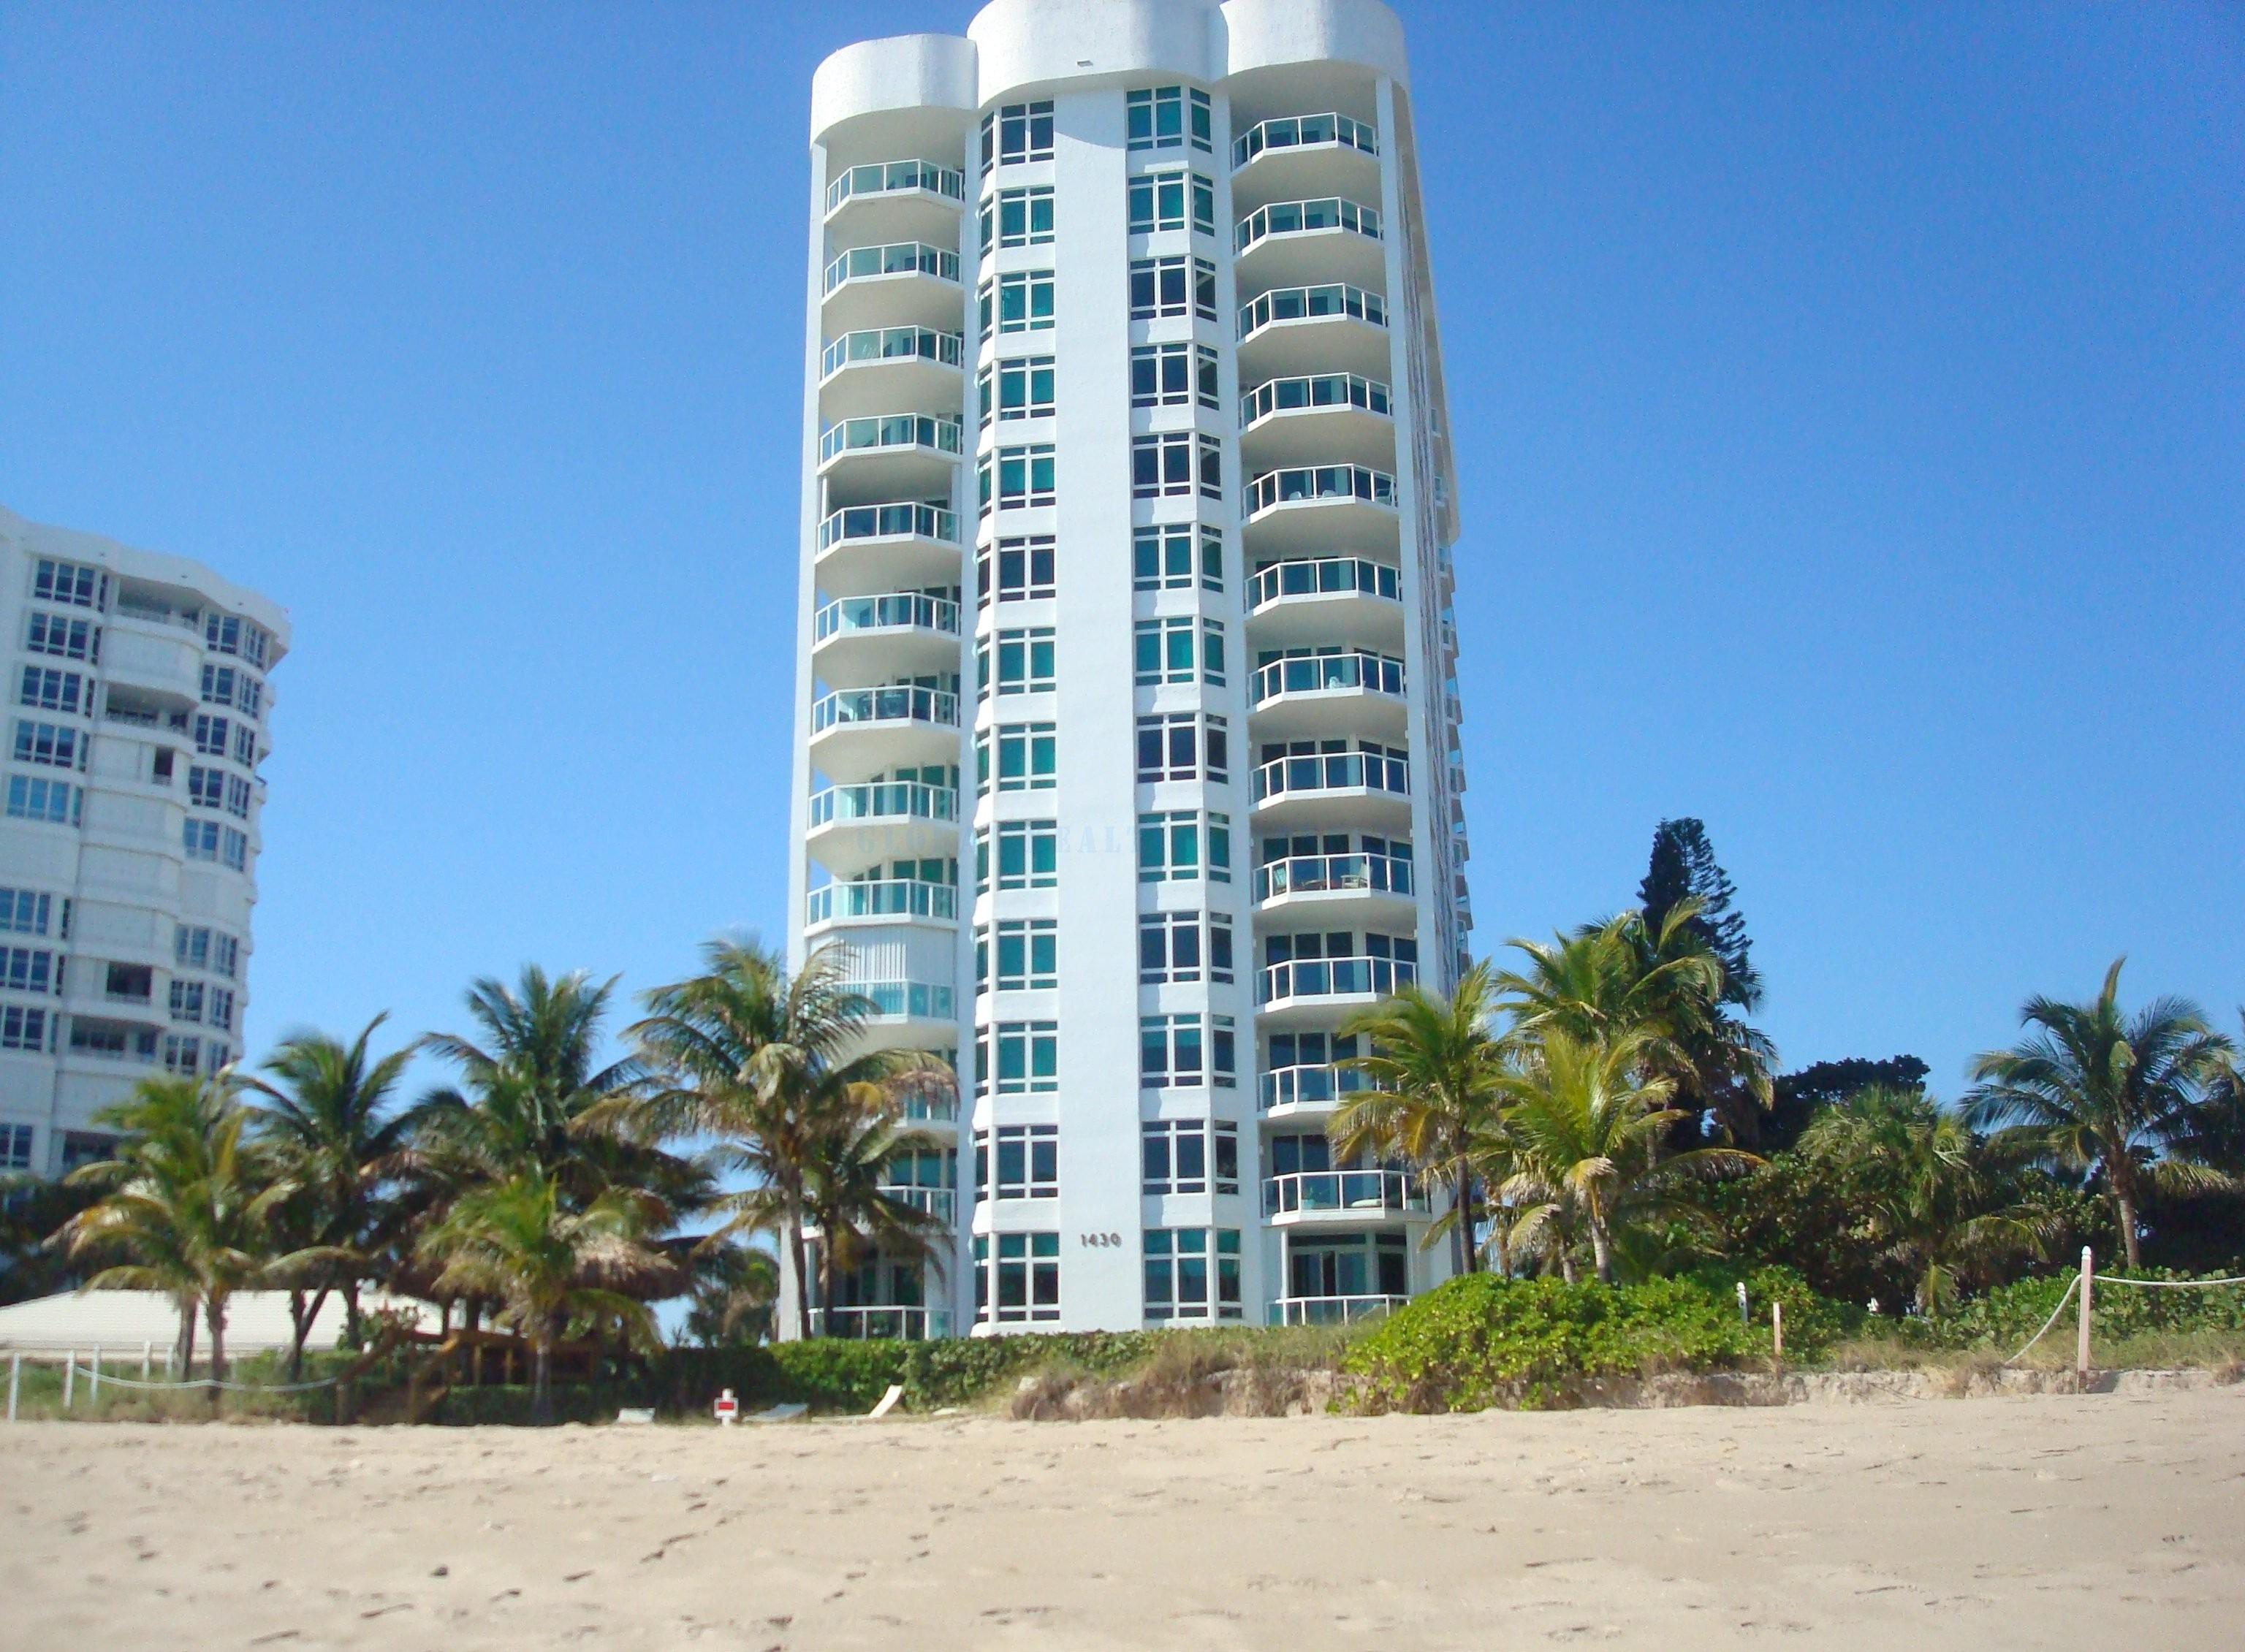 Cristelle Cay - Lauderdale-by-the-Sea, FL Condos for Sale